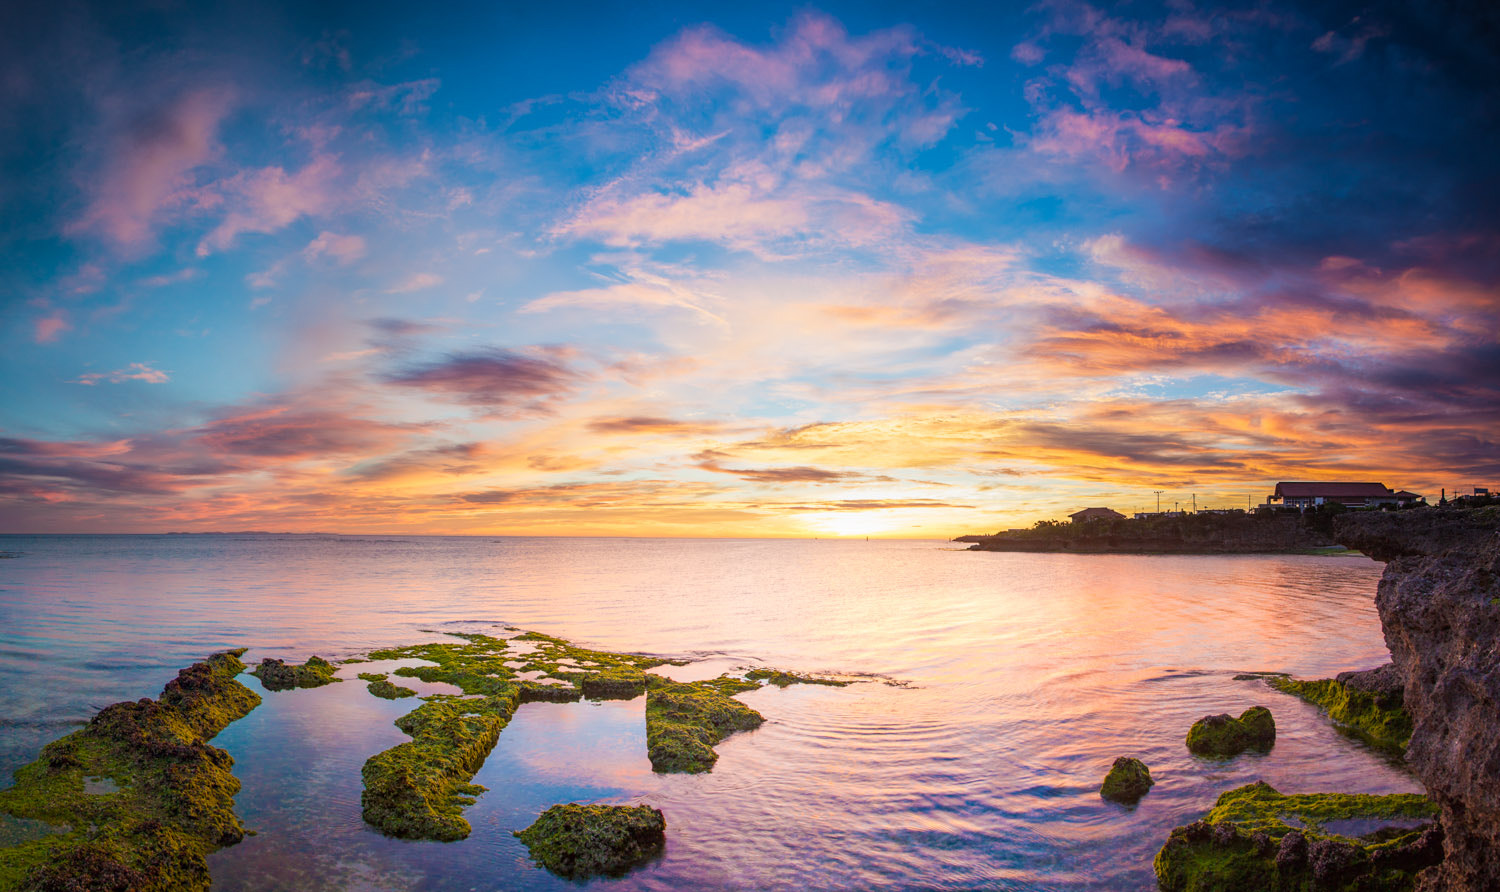 Photograph Okinawa Magic by Pete Leong on 500px